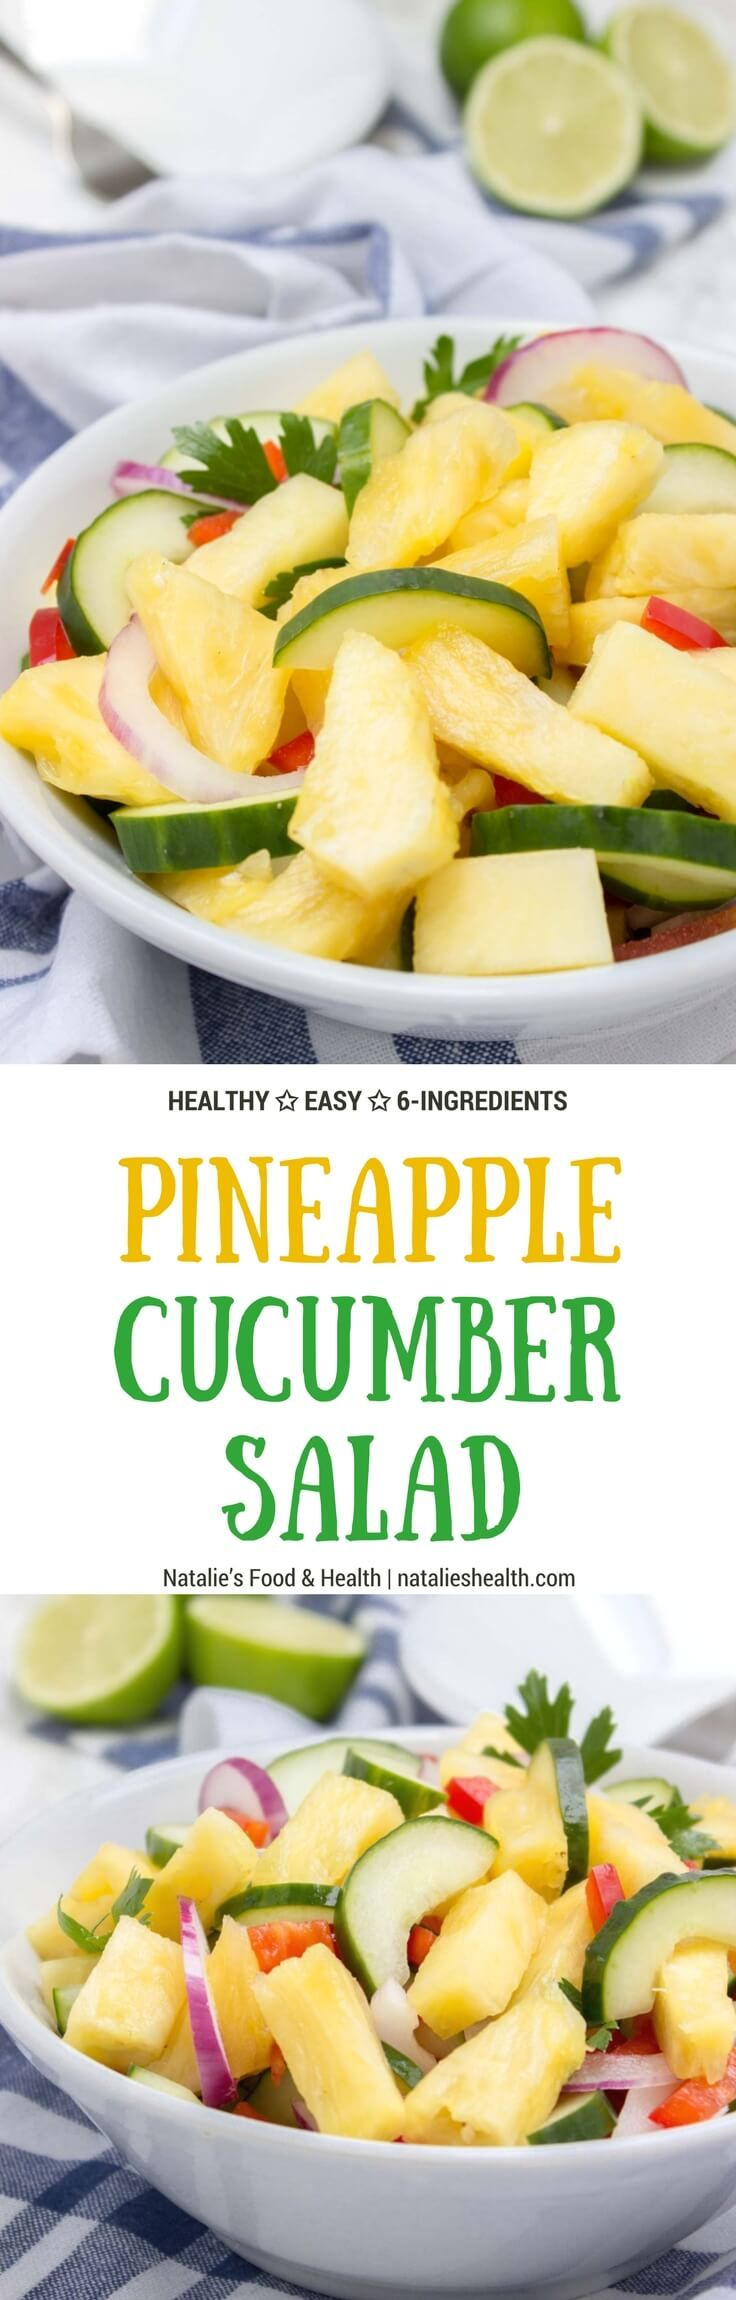 Jucy and refreshing Pineapple Cucumber Salad is a…